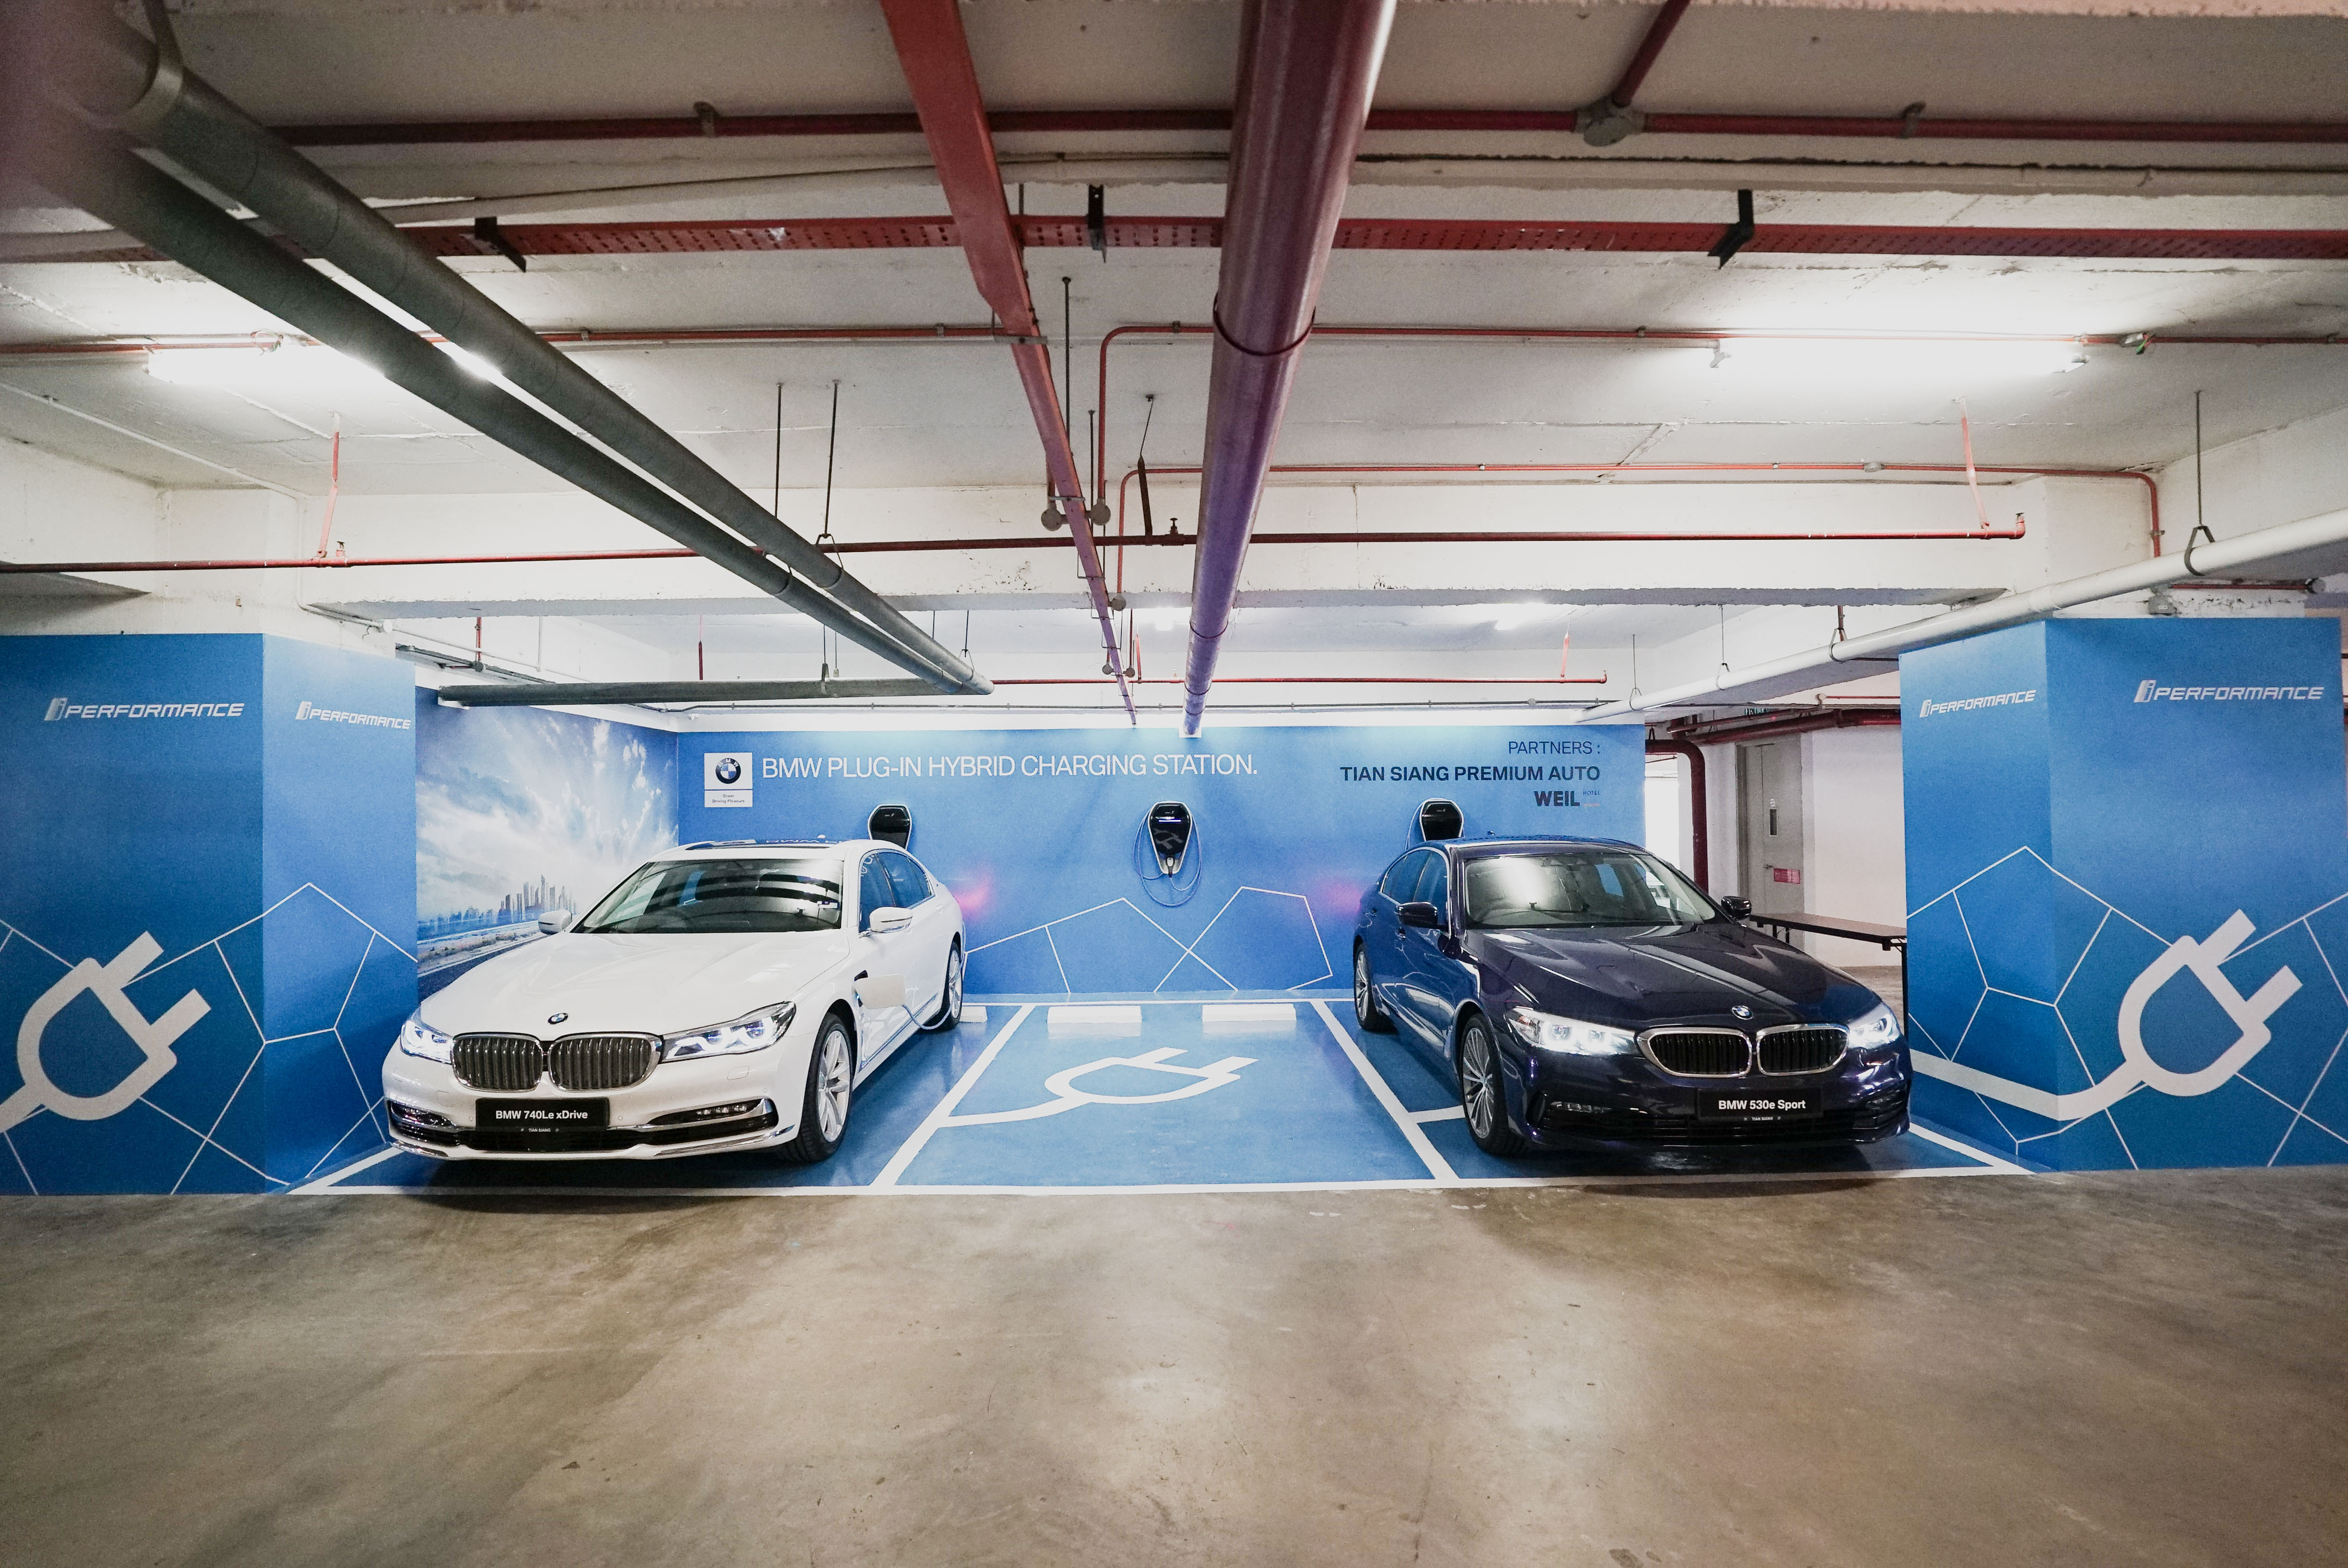 Full Charge Ahead. BMW i Charging Stations unveiled at WEIL Hotel ...